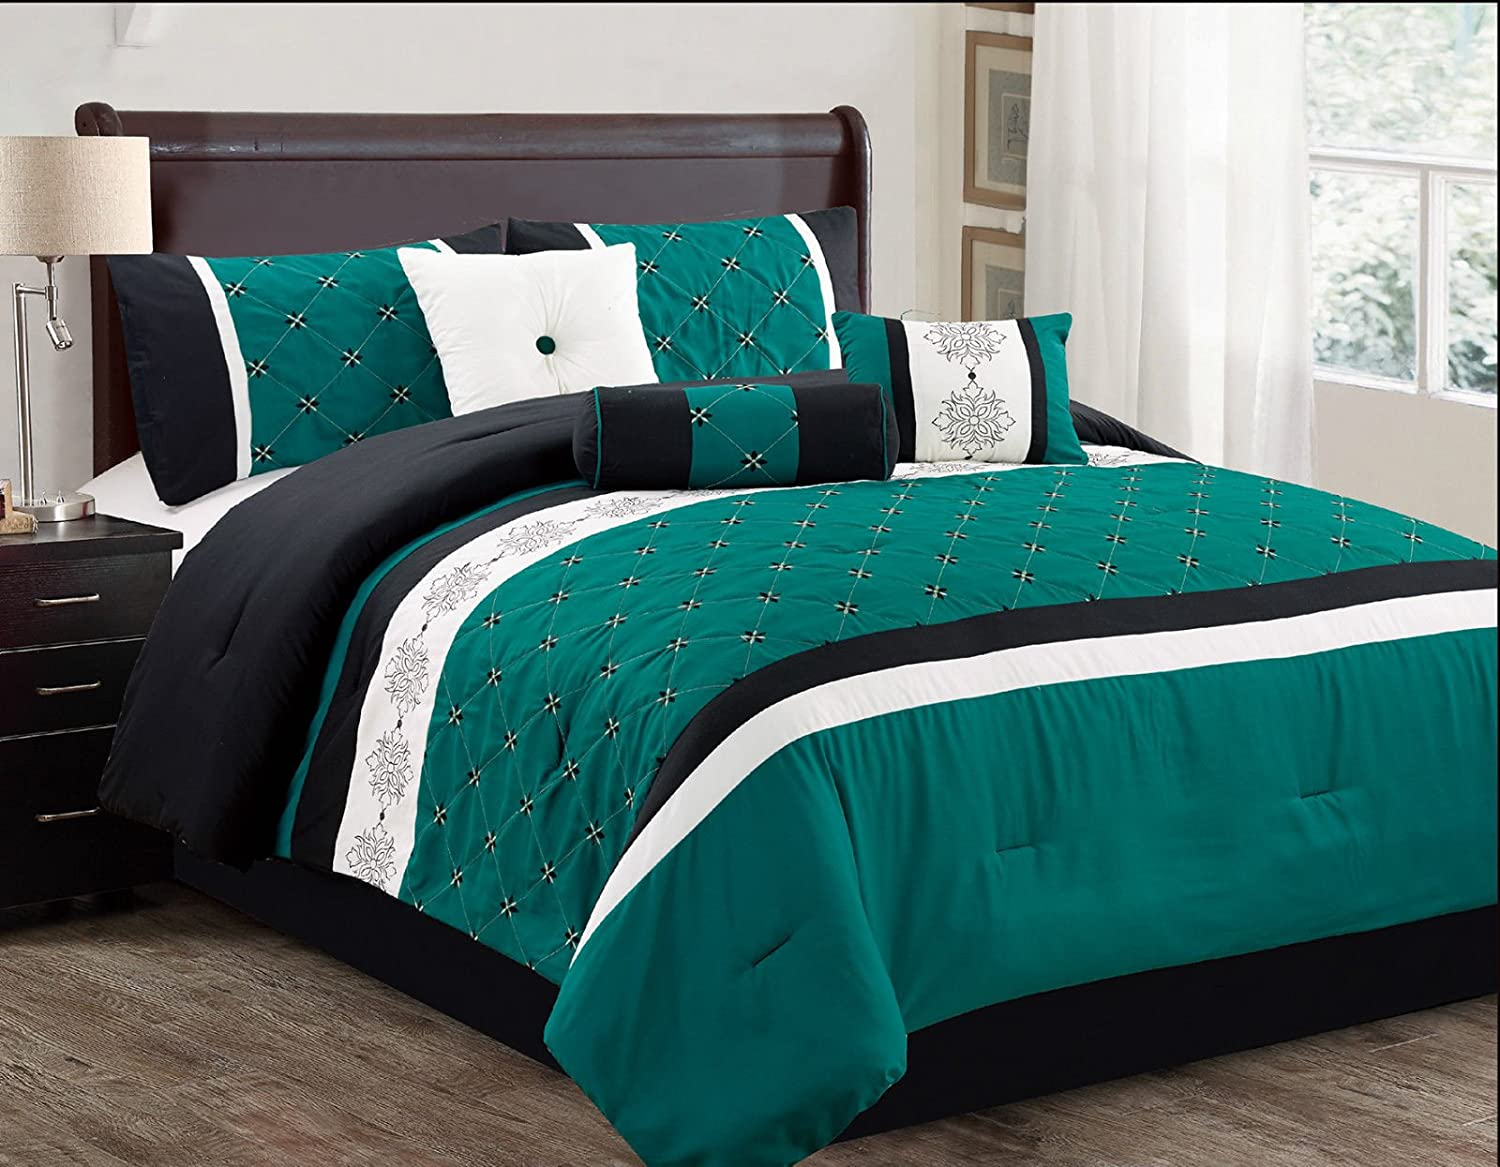 black gray and green bedding Bedding set stunning lime